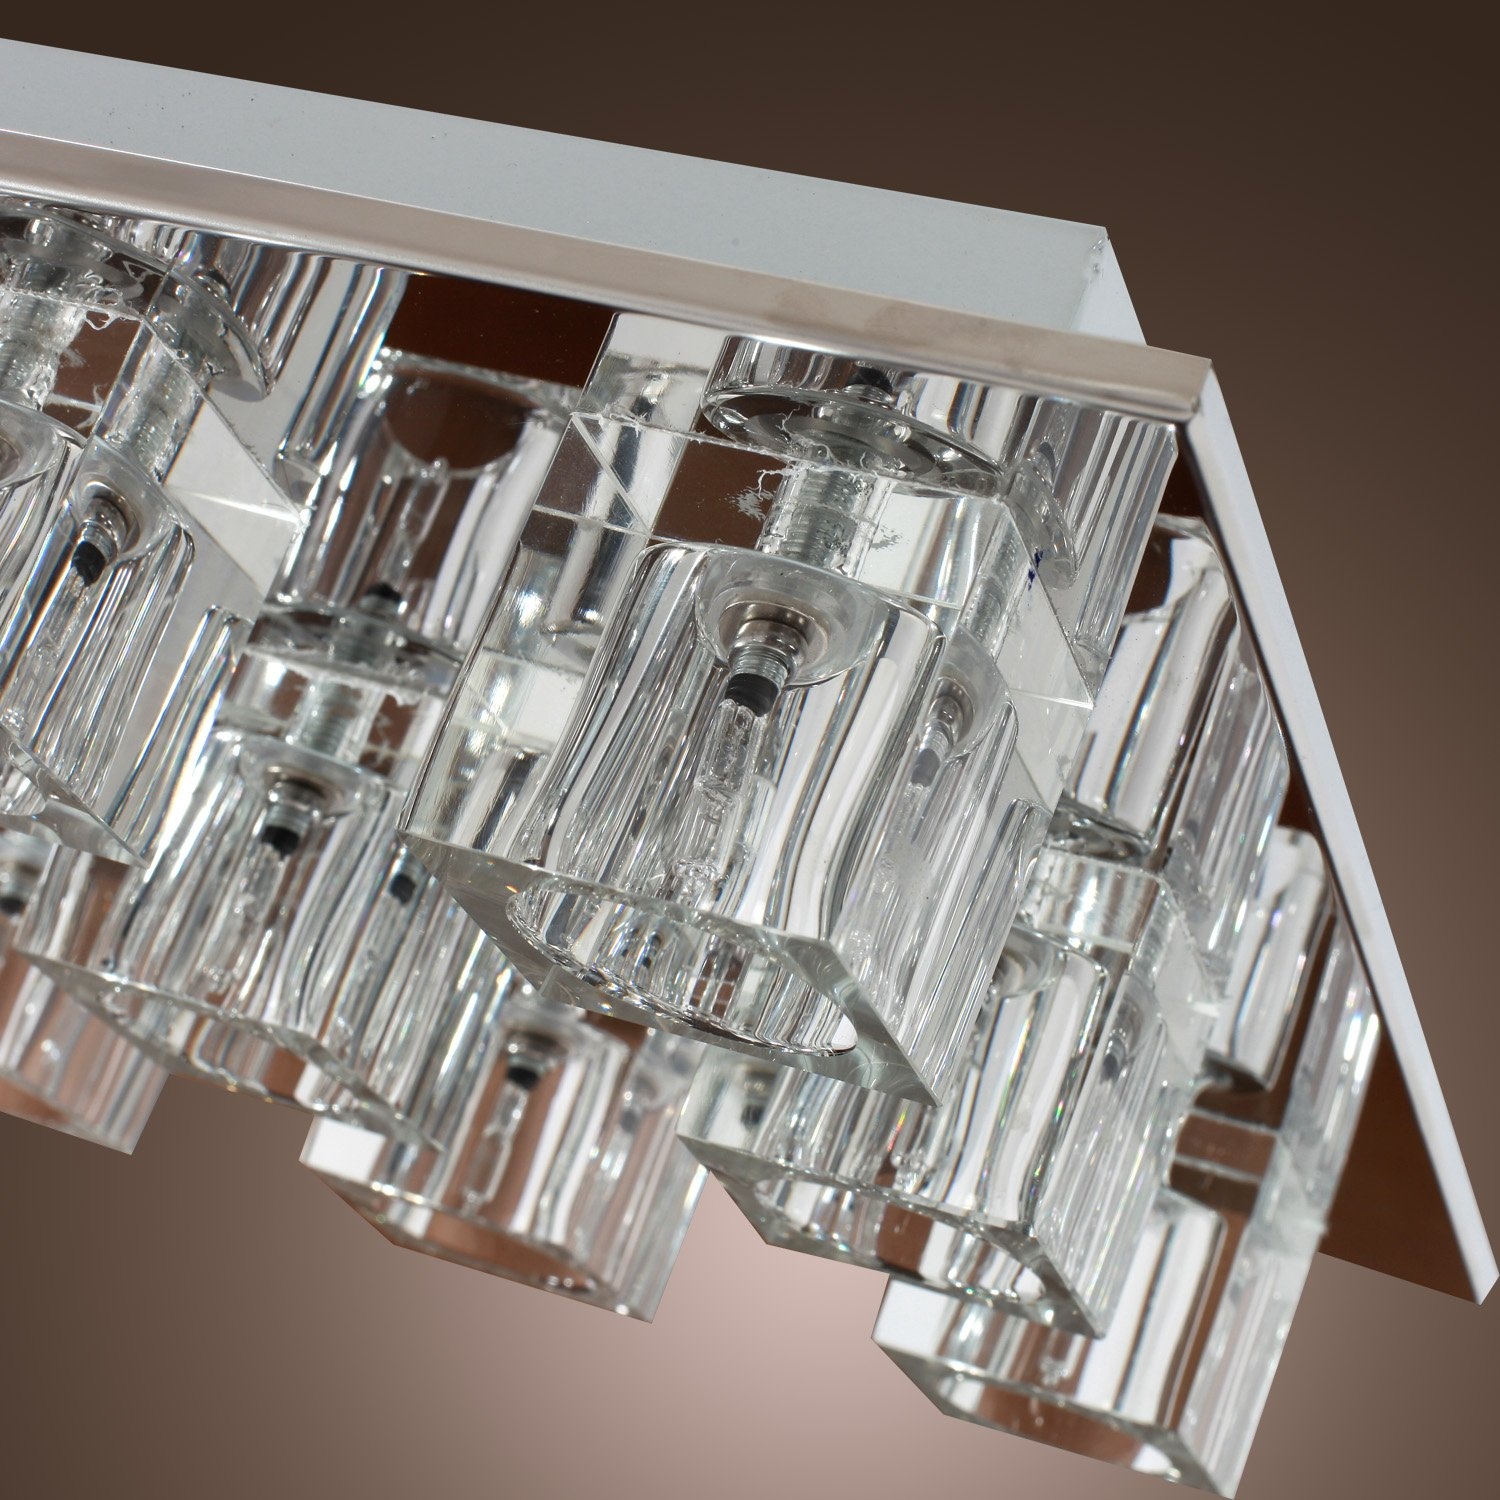 SALE!!! Lightinthebox K9 Crystal Ceiling Light with 9 Lights in ...